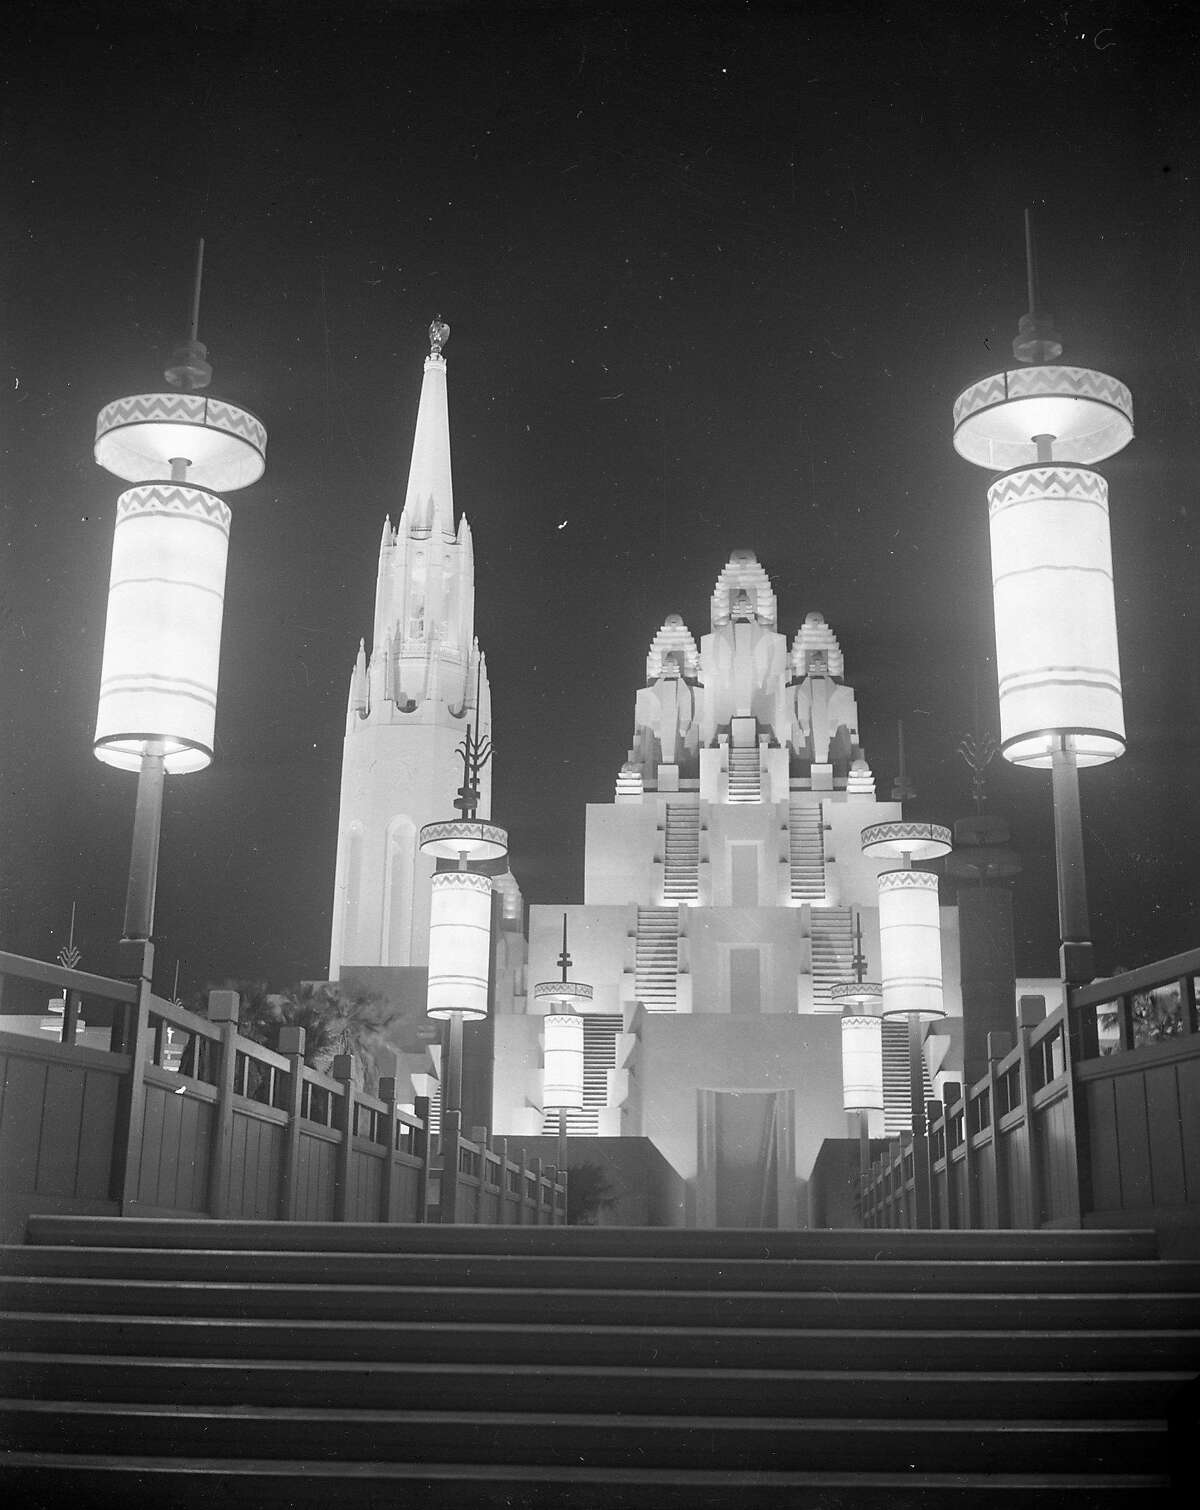 Night time photos of the Golden Gate International Exposition on Treasure Island, 1940